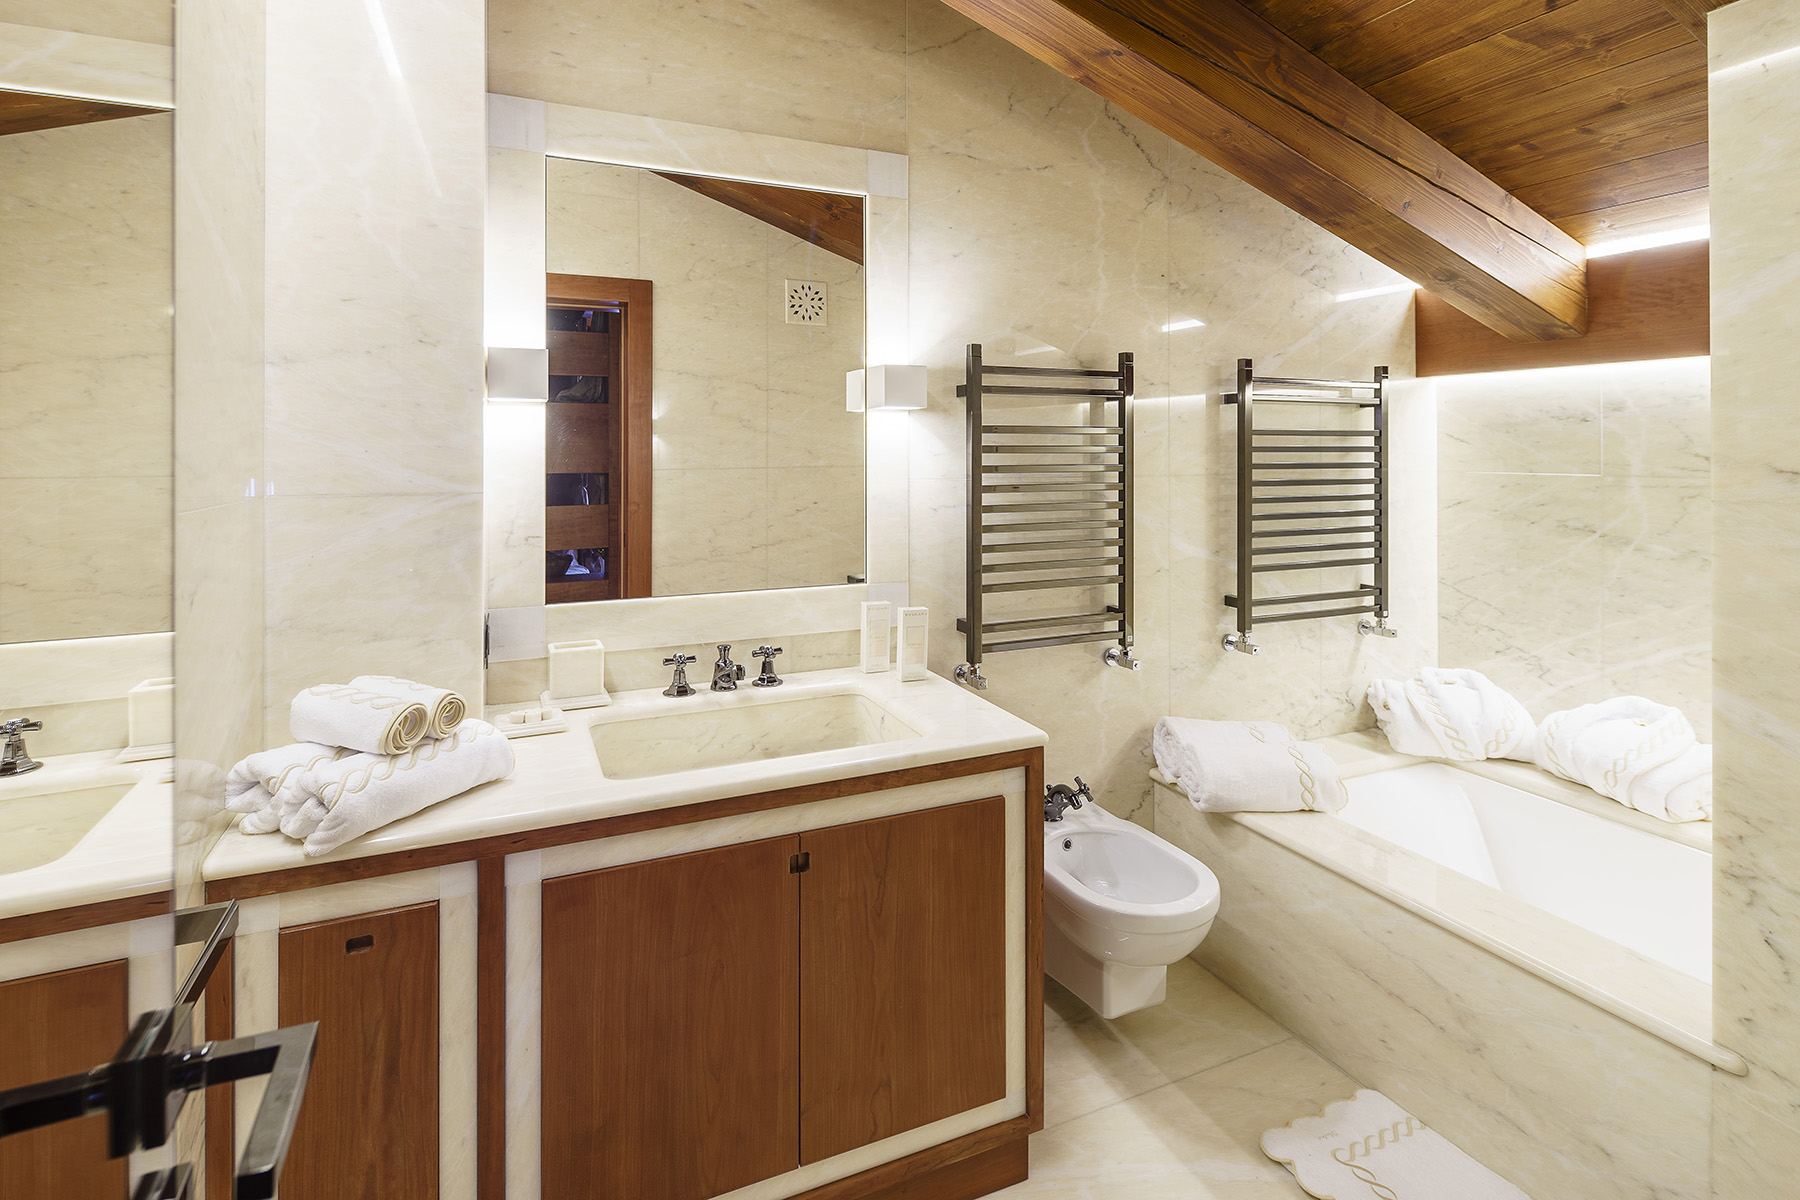 Additional photo for property listing at Luxury chalet in Cortina d'Ampezzo Cortina D'Ampezzo, Belluno Italy